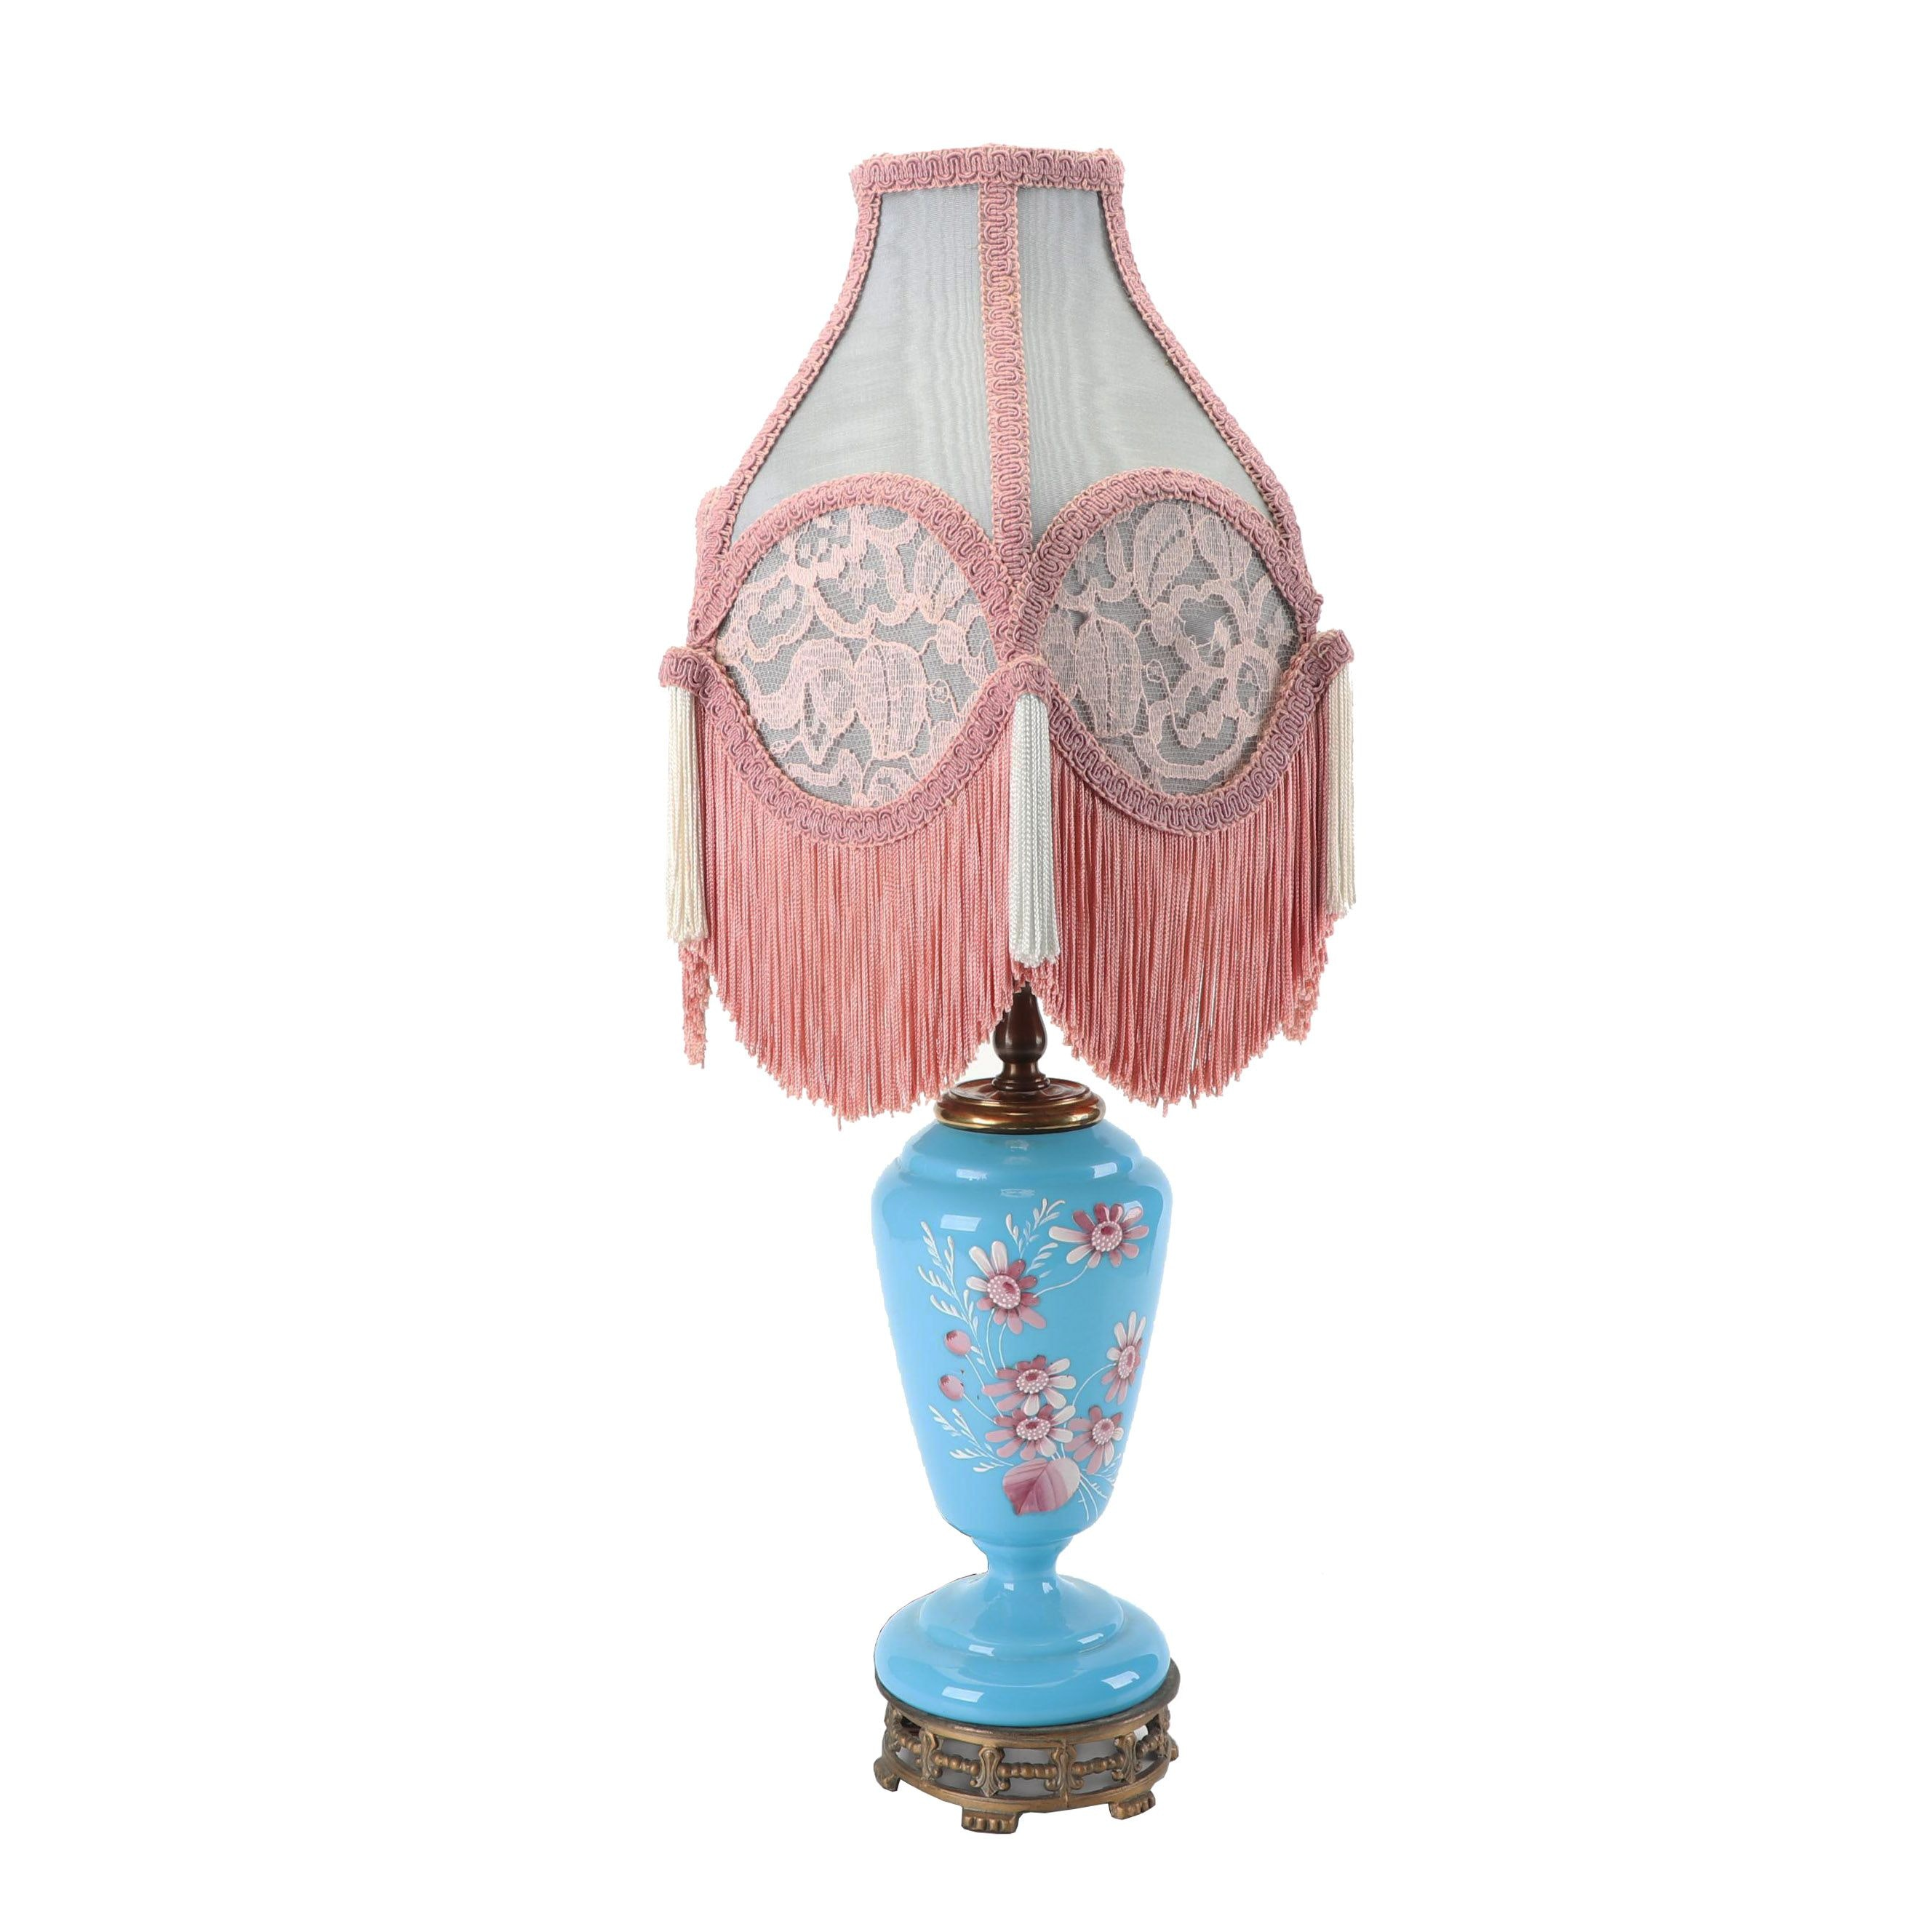 Vintage Hand Painted Blue Milk Glass Table Lamp with Fringed Shade